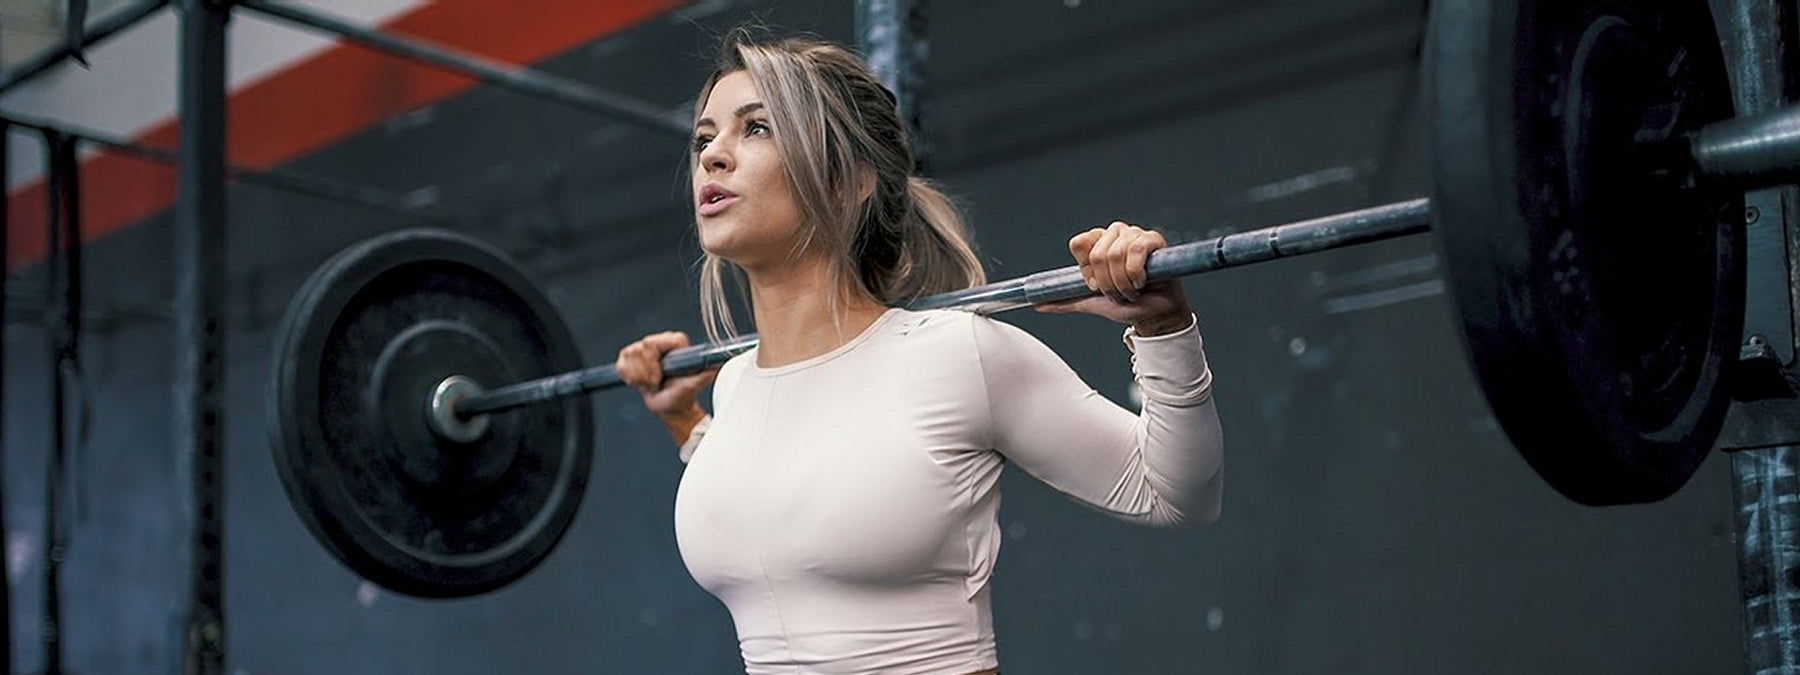 Nikki Blackketter - Biography and Fun Facts